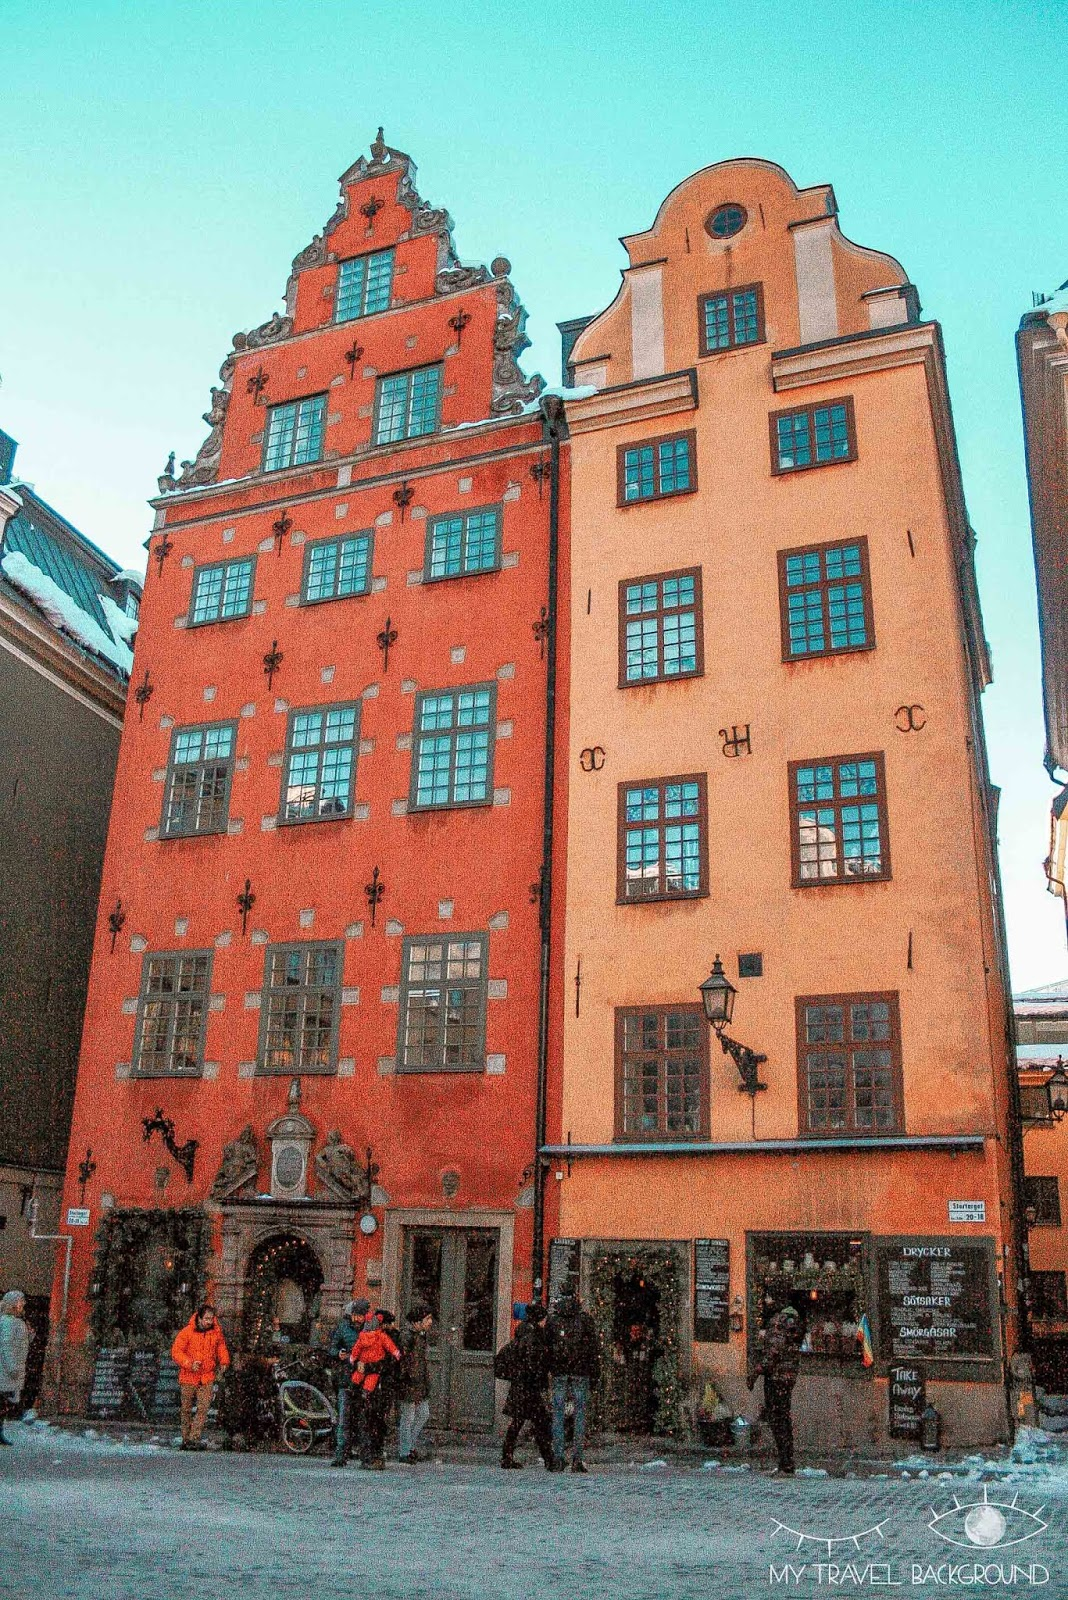 My Travel Background : Visiter Stockholm, mes immanquables - Place Stortorget